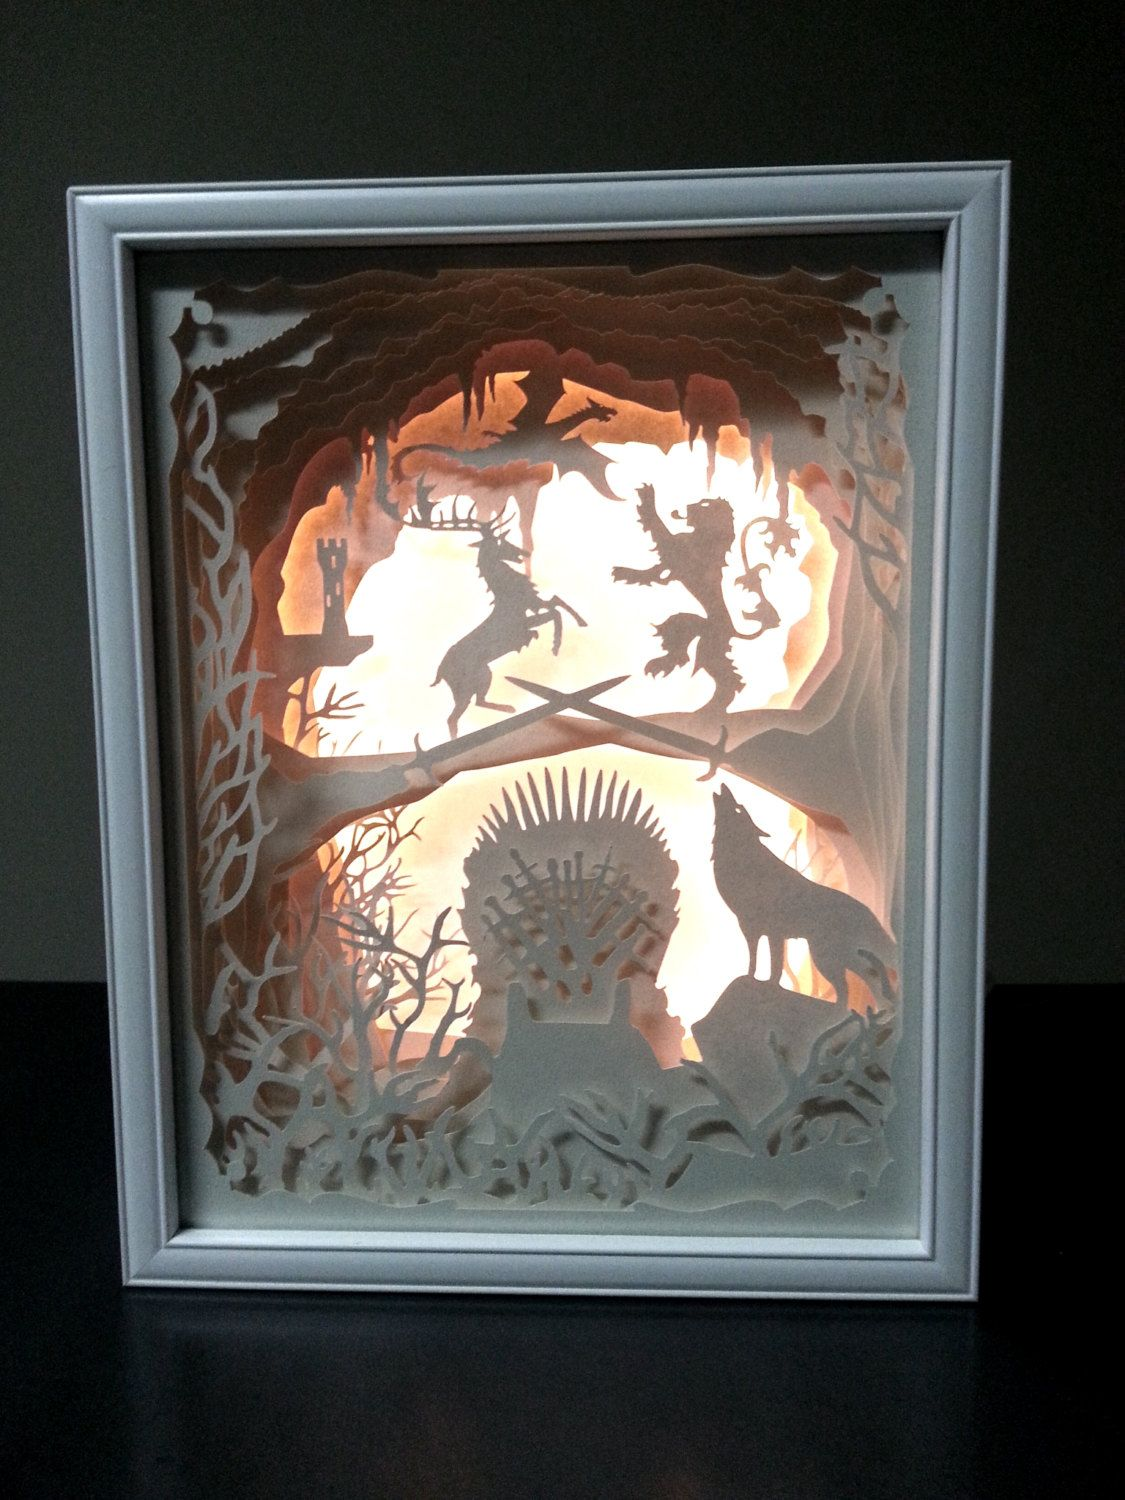 New Price Game Of Thrones Inspired Papercut Led Lighted White Shadow Box 15 X 12 X 2 75 Shadow Box Art White Shadow Box Shadow Box